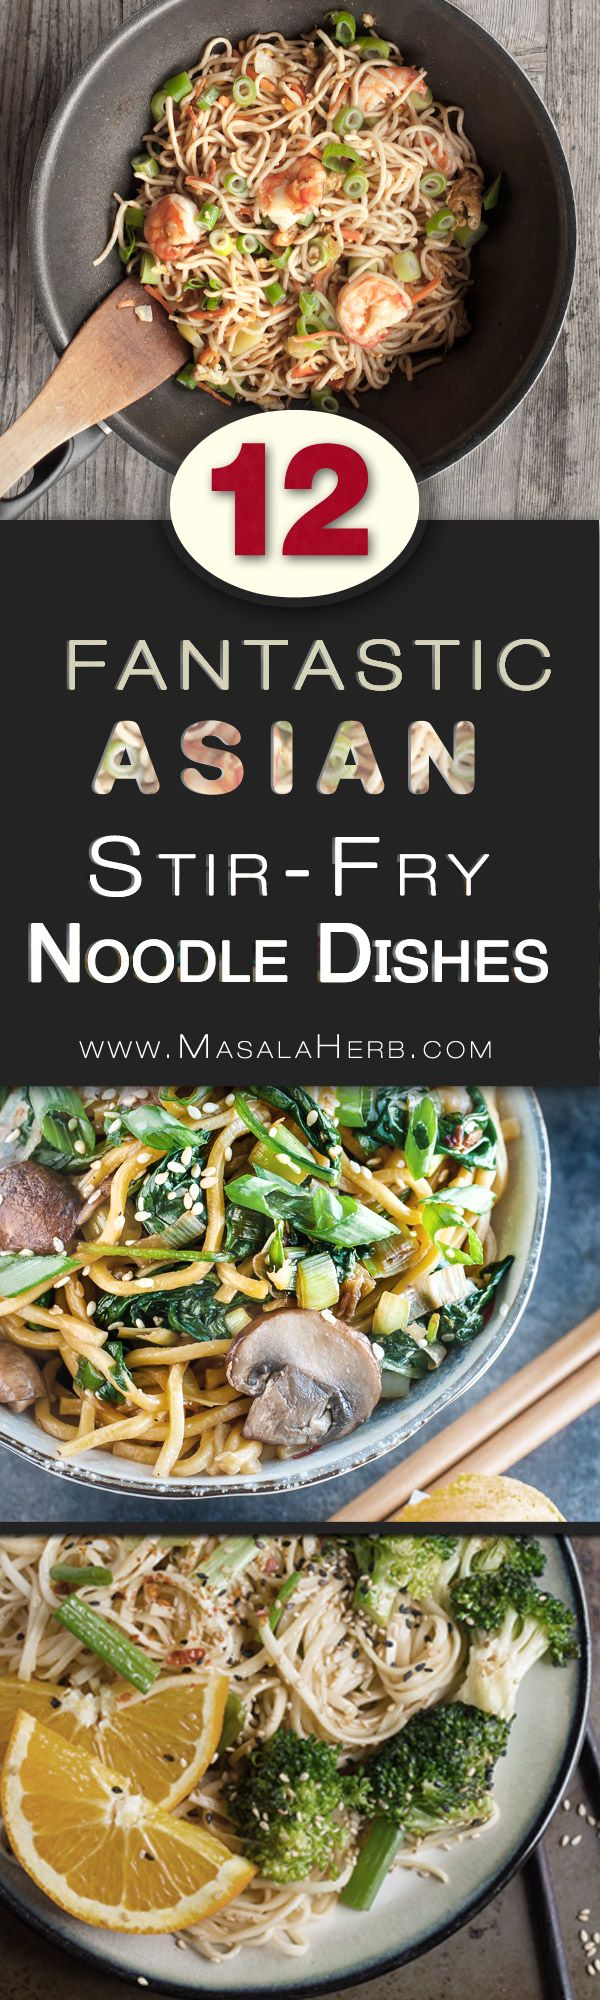 12 fantastic Stir-Fry Asian Noodle Dishes you need to try! Collection at MasalaHerb.com ---